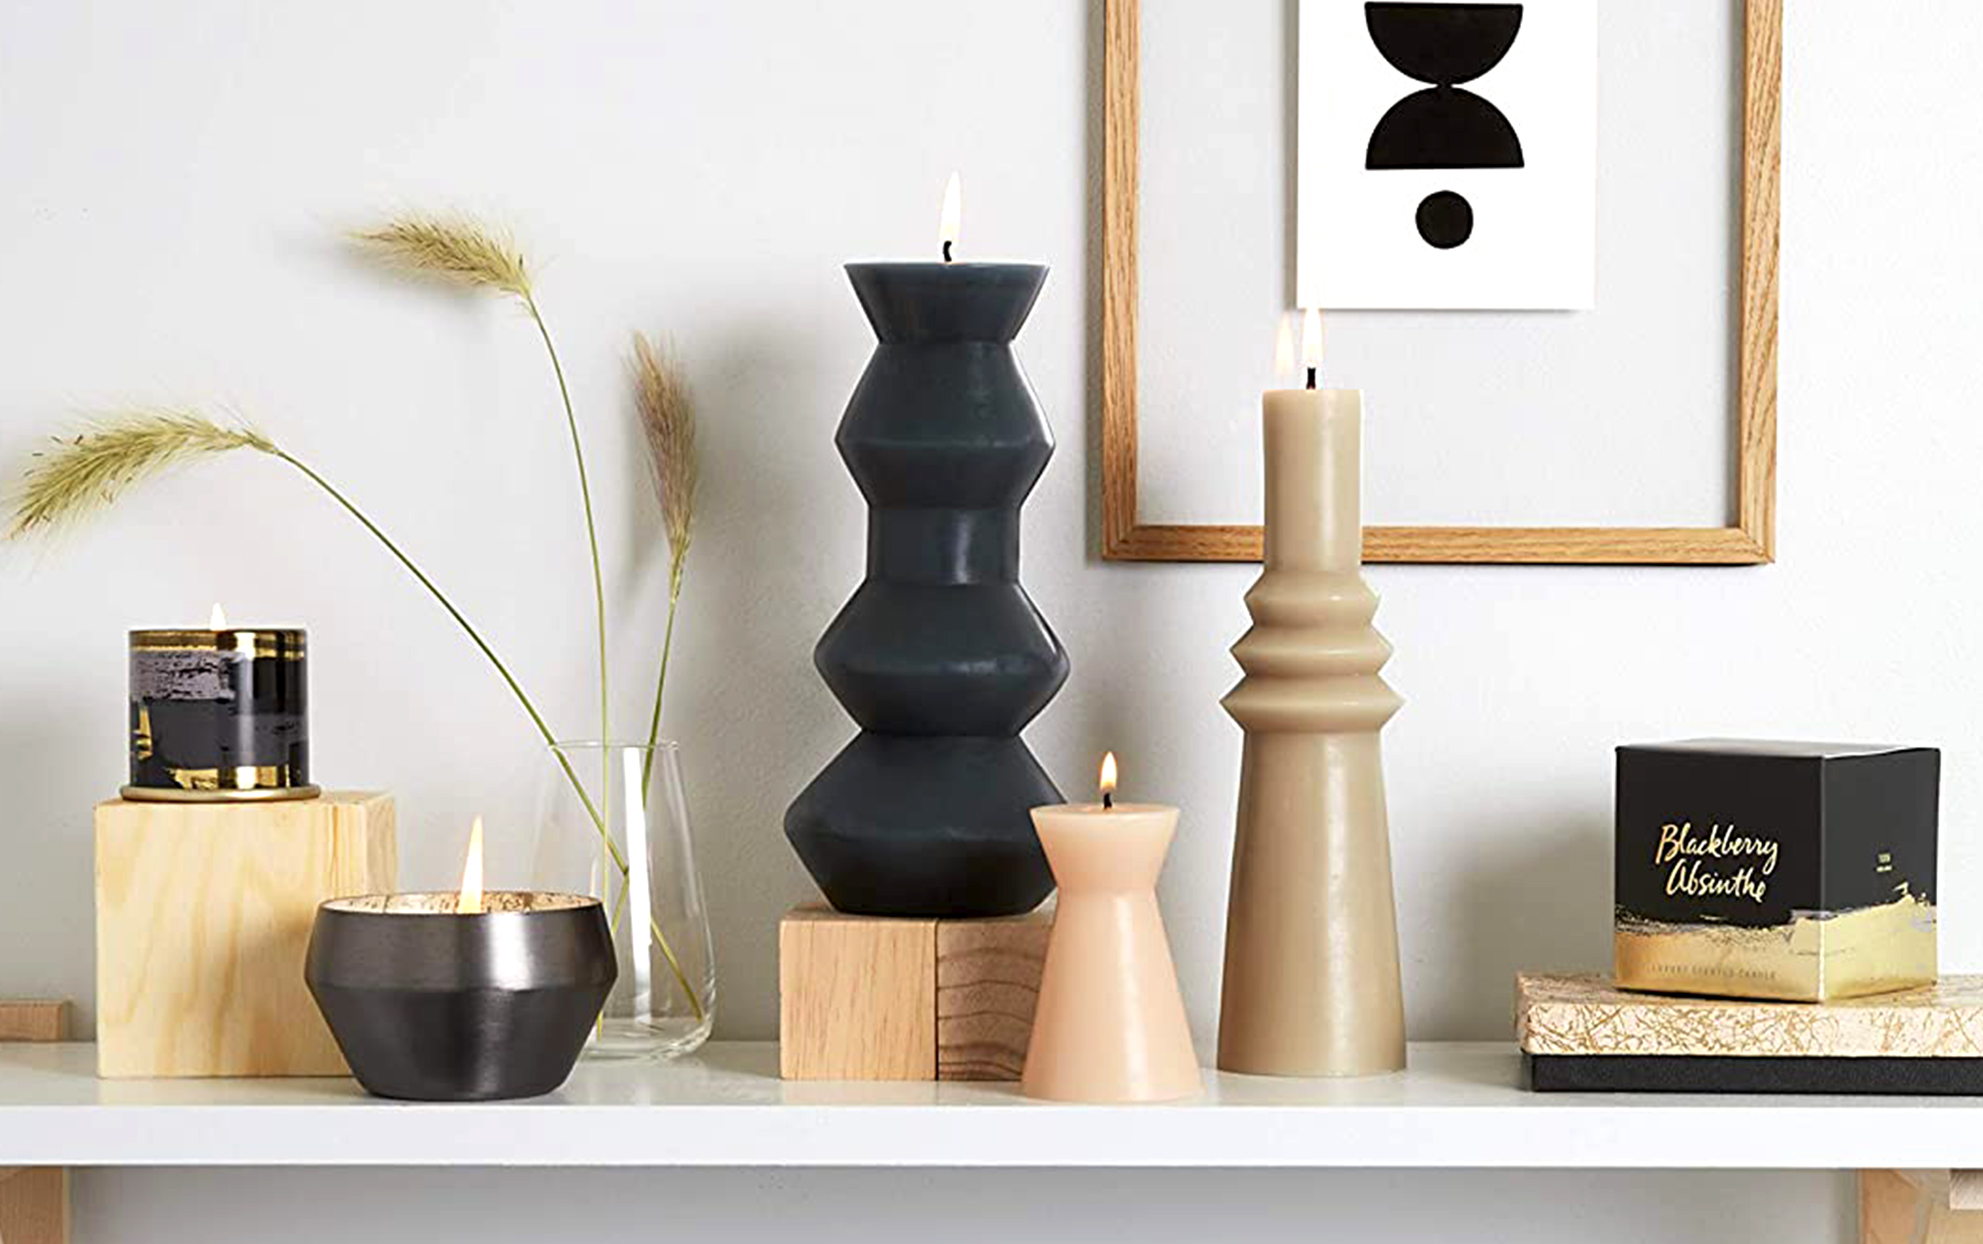 Structural candles on a shelf with other home decor